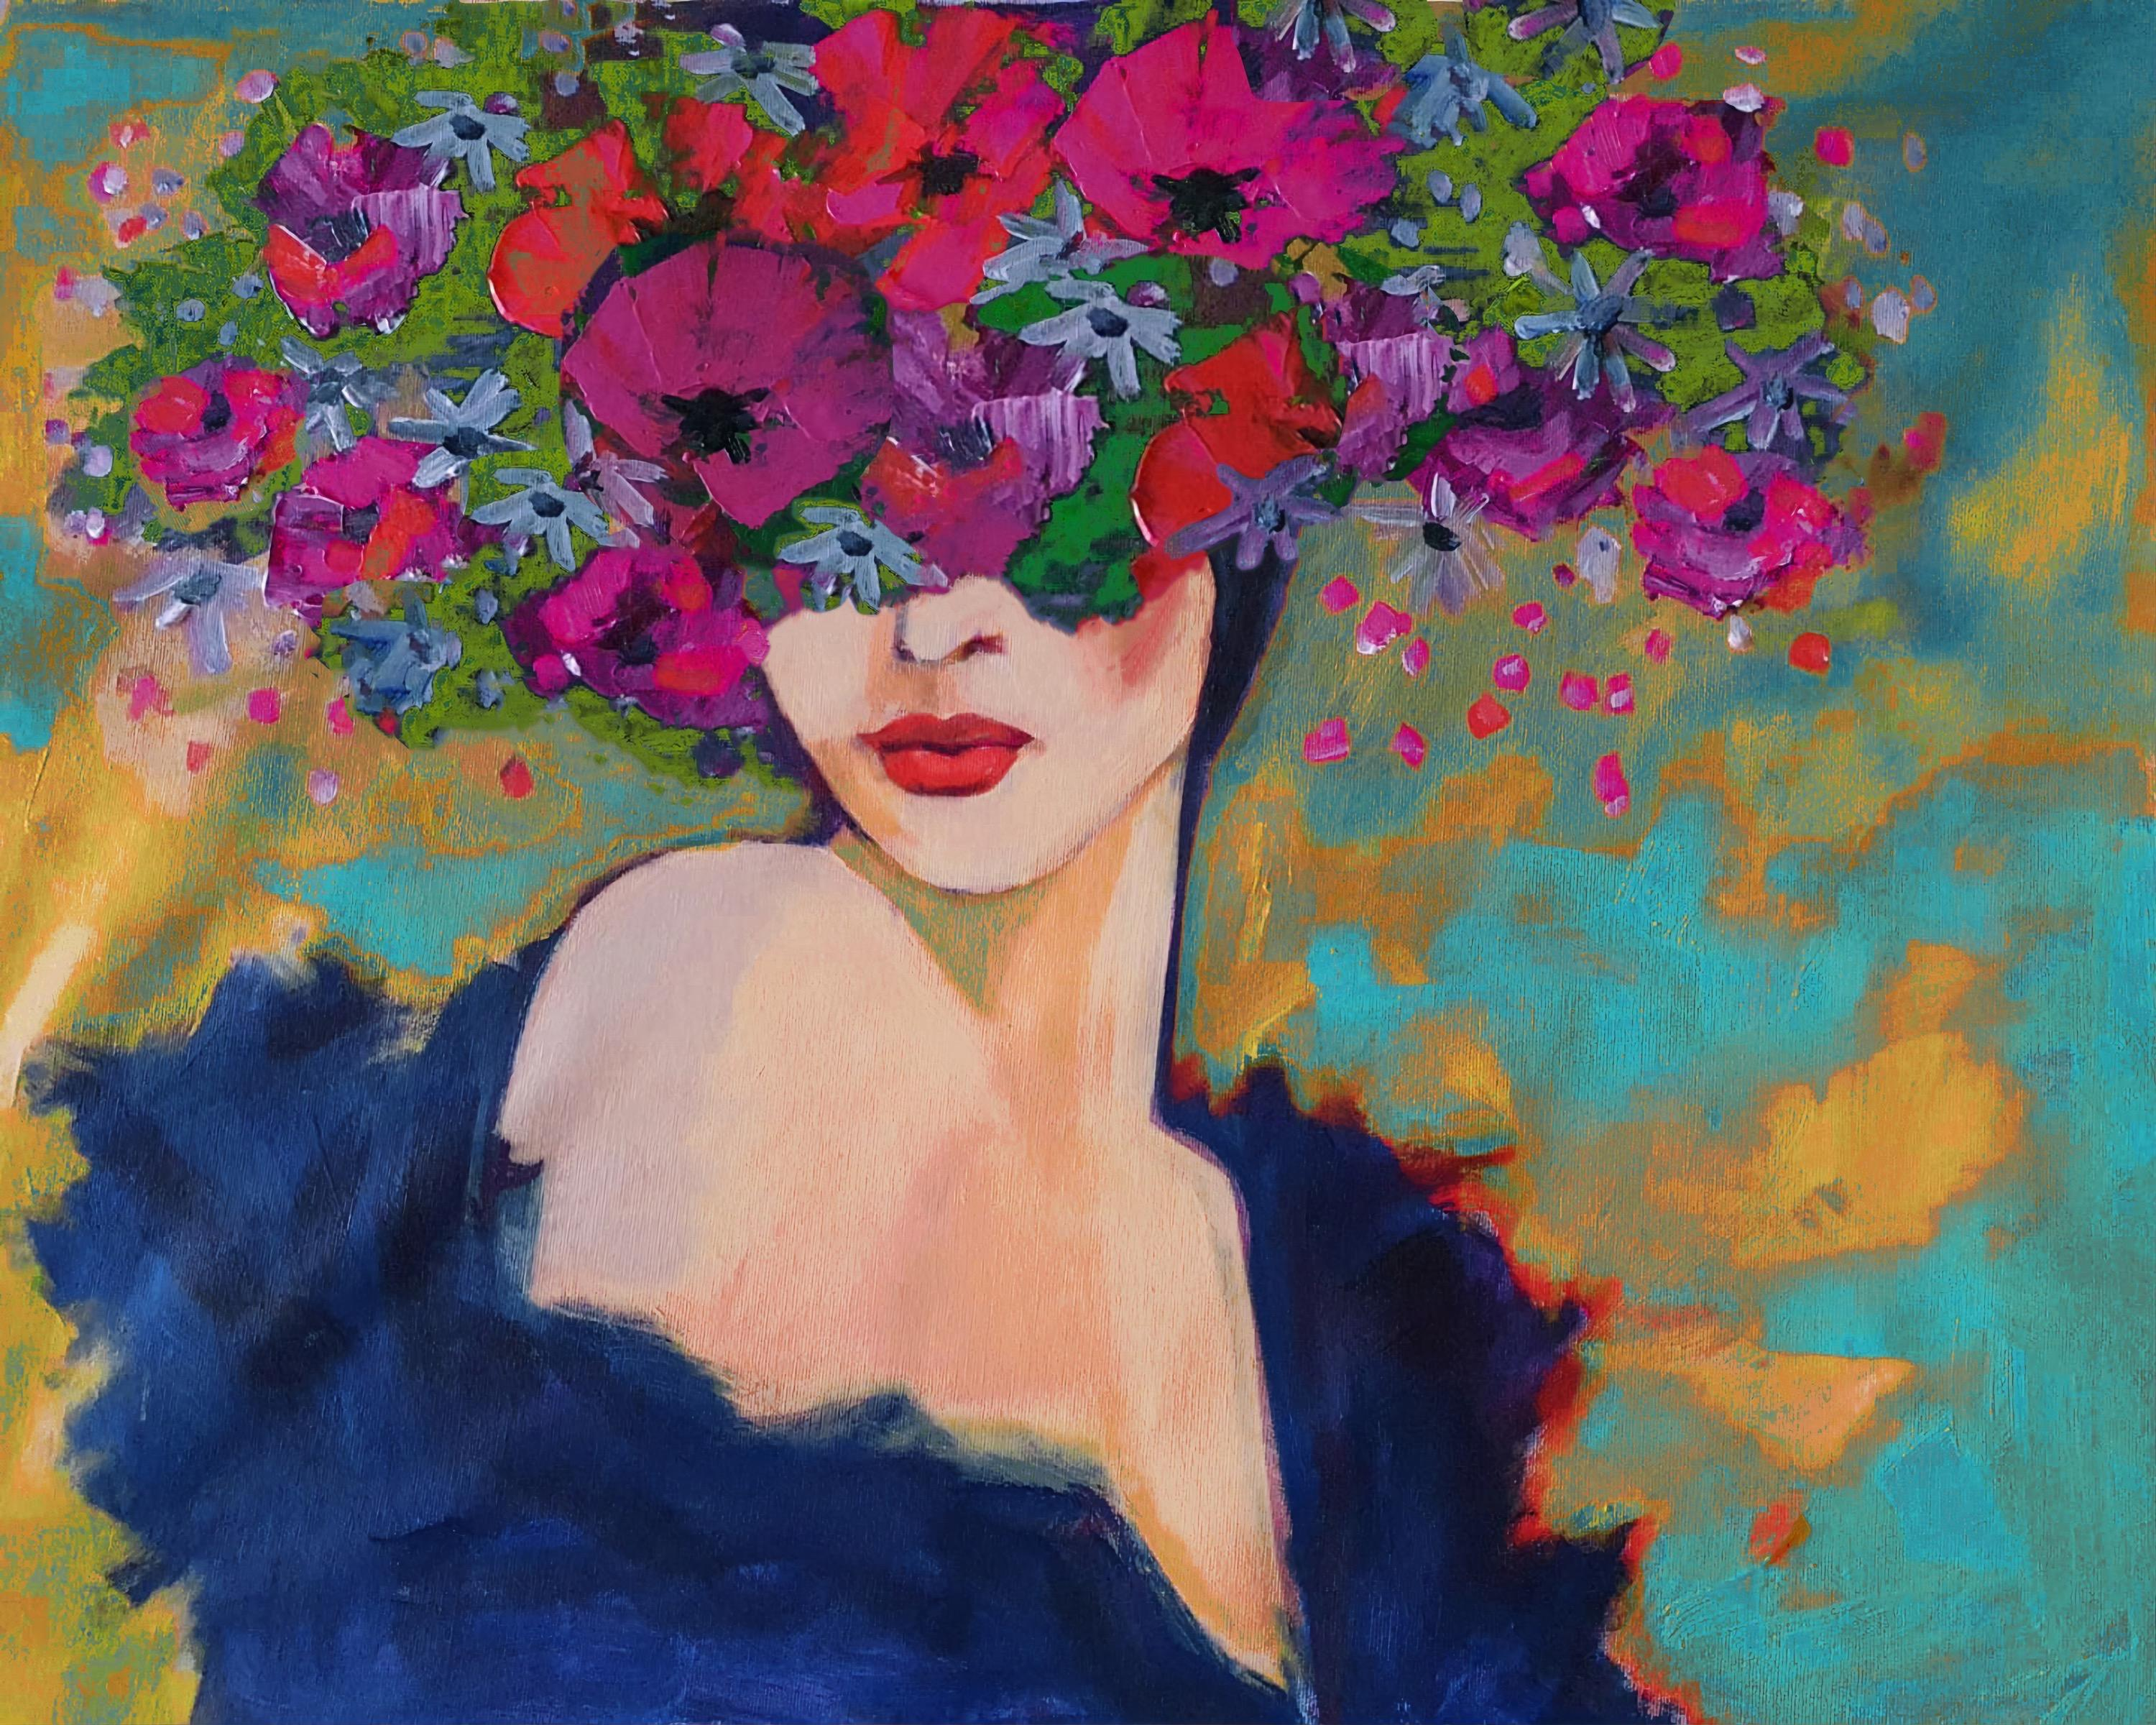 Floral Painting Portrait Textured Mixed Media Spring Passion Bohemian